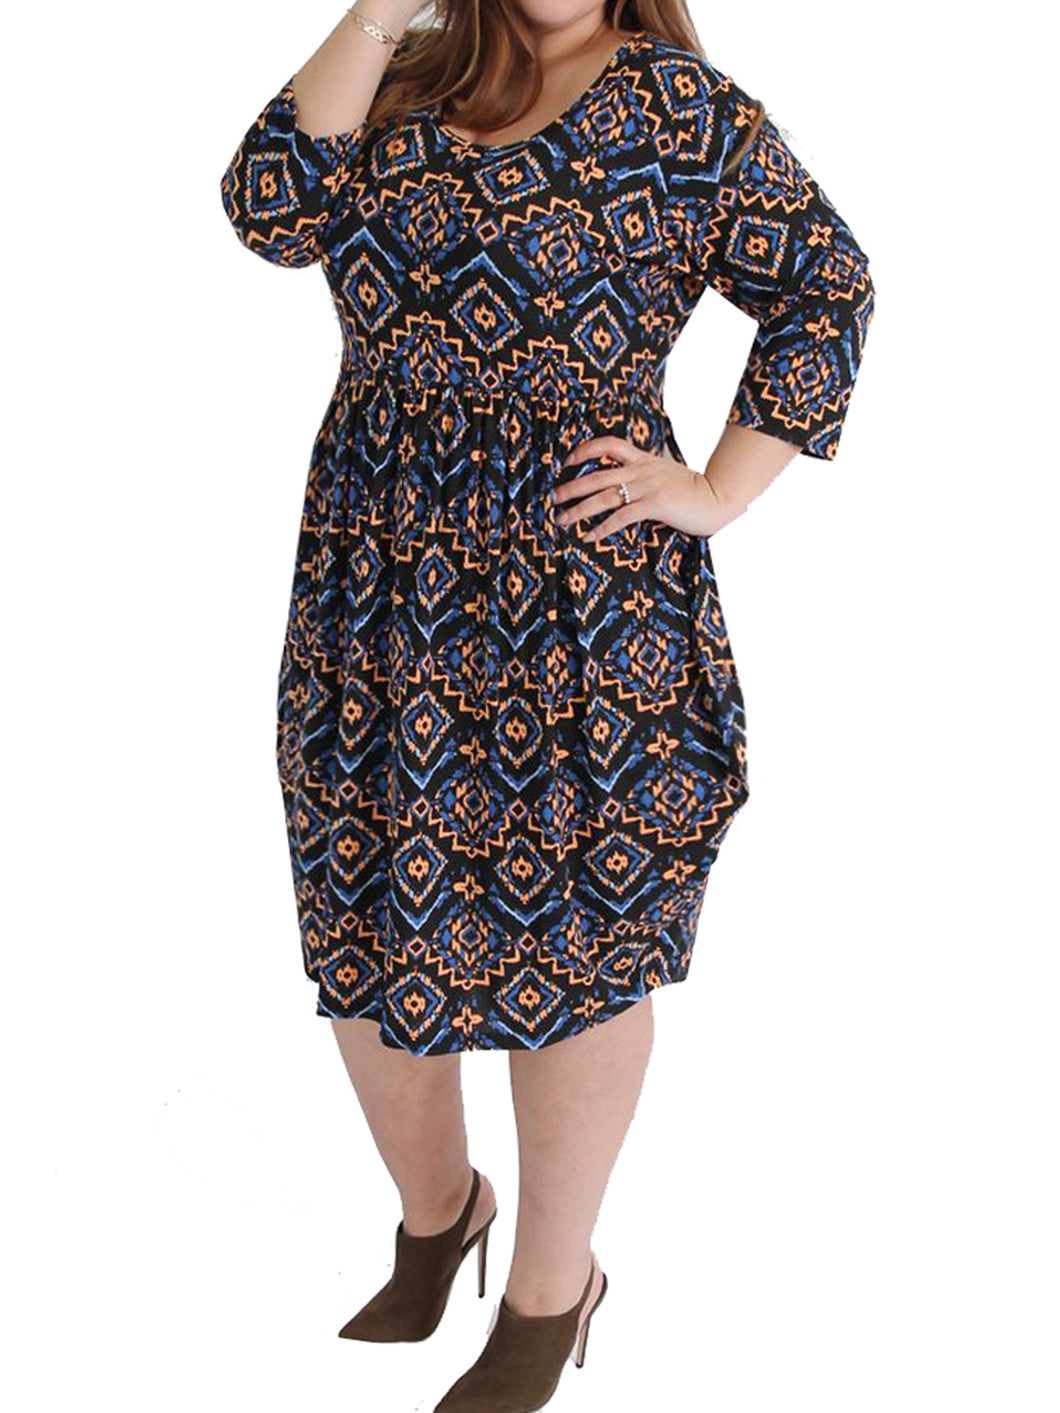 NAVY Coveted Drape Side Tribal Print Jersey Dress - Plus Size 16 to 30/32